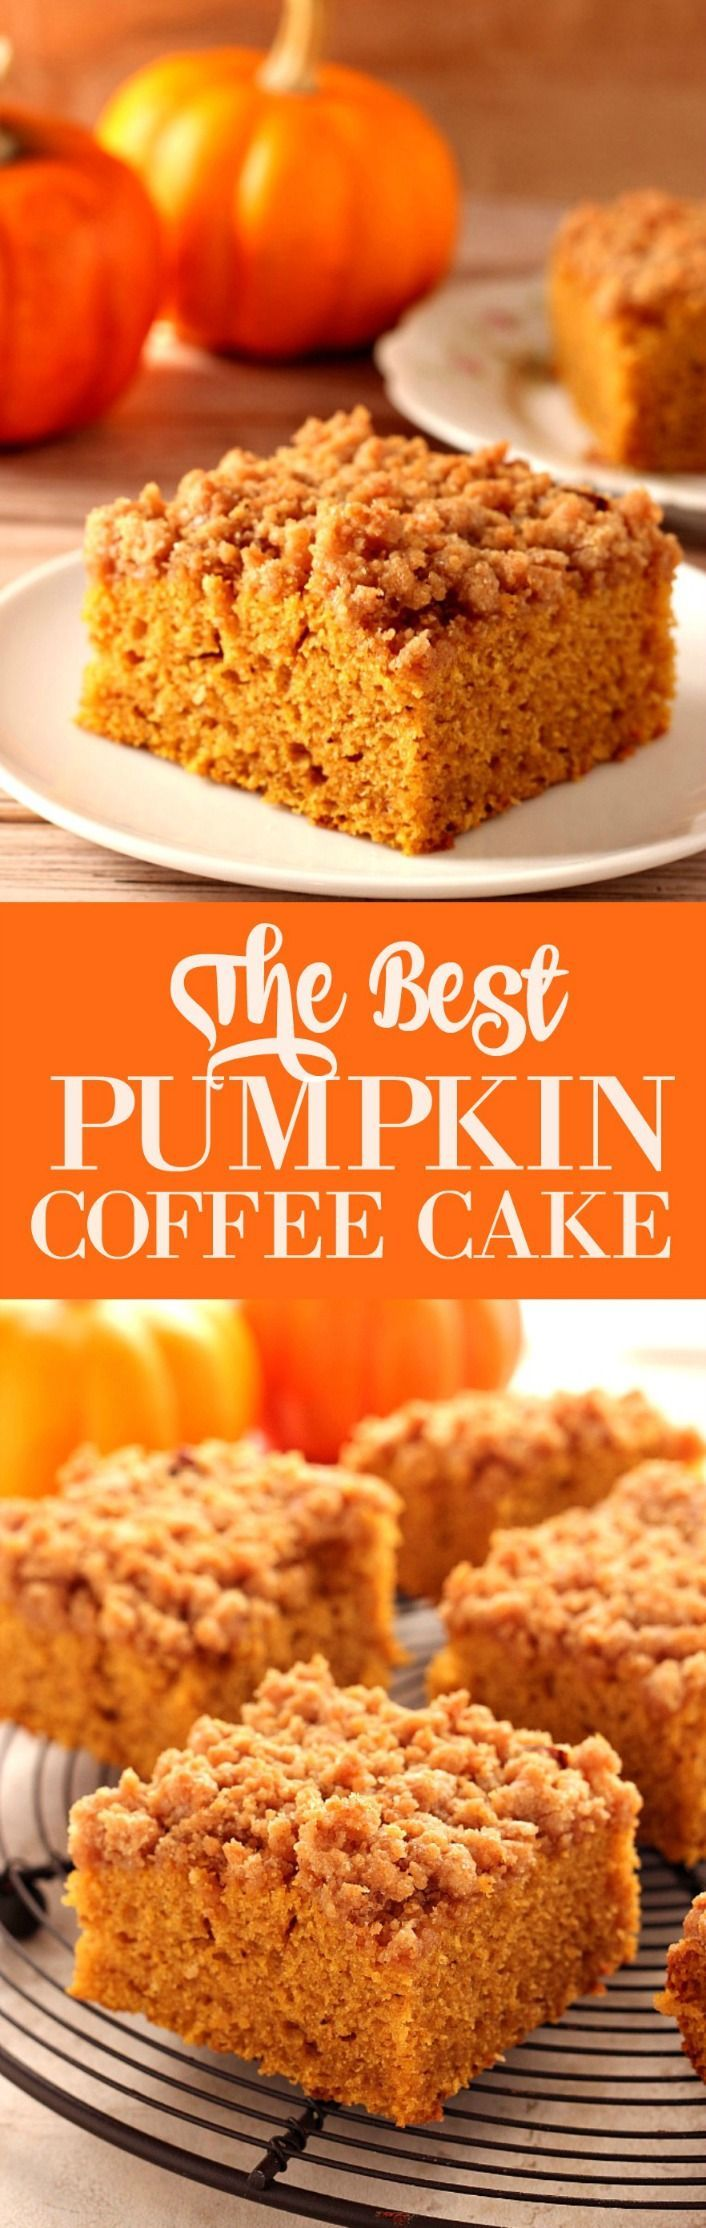 the best pumpkin coffee cake long The Best Pumpkin Coffee Cake